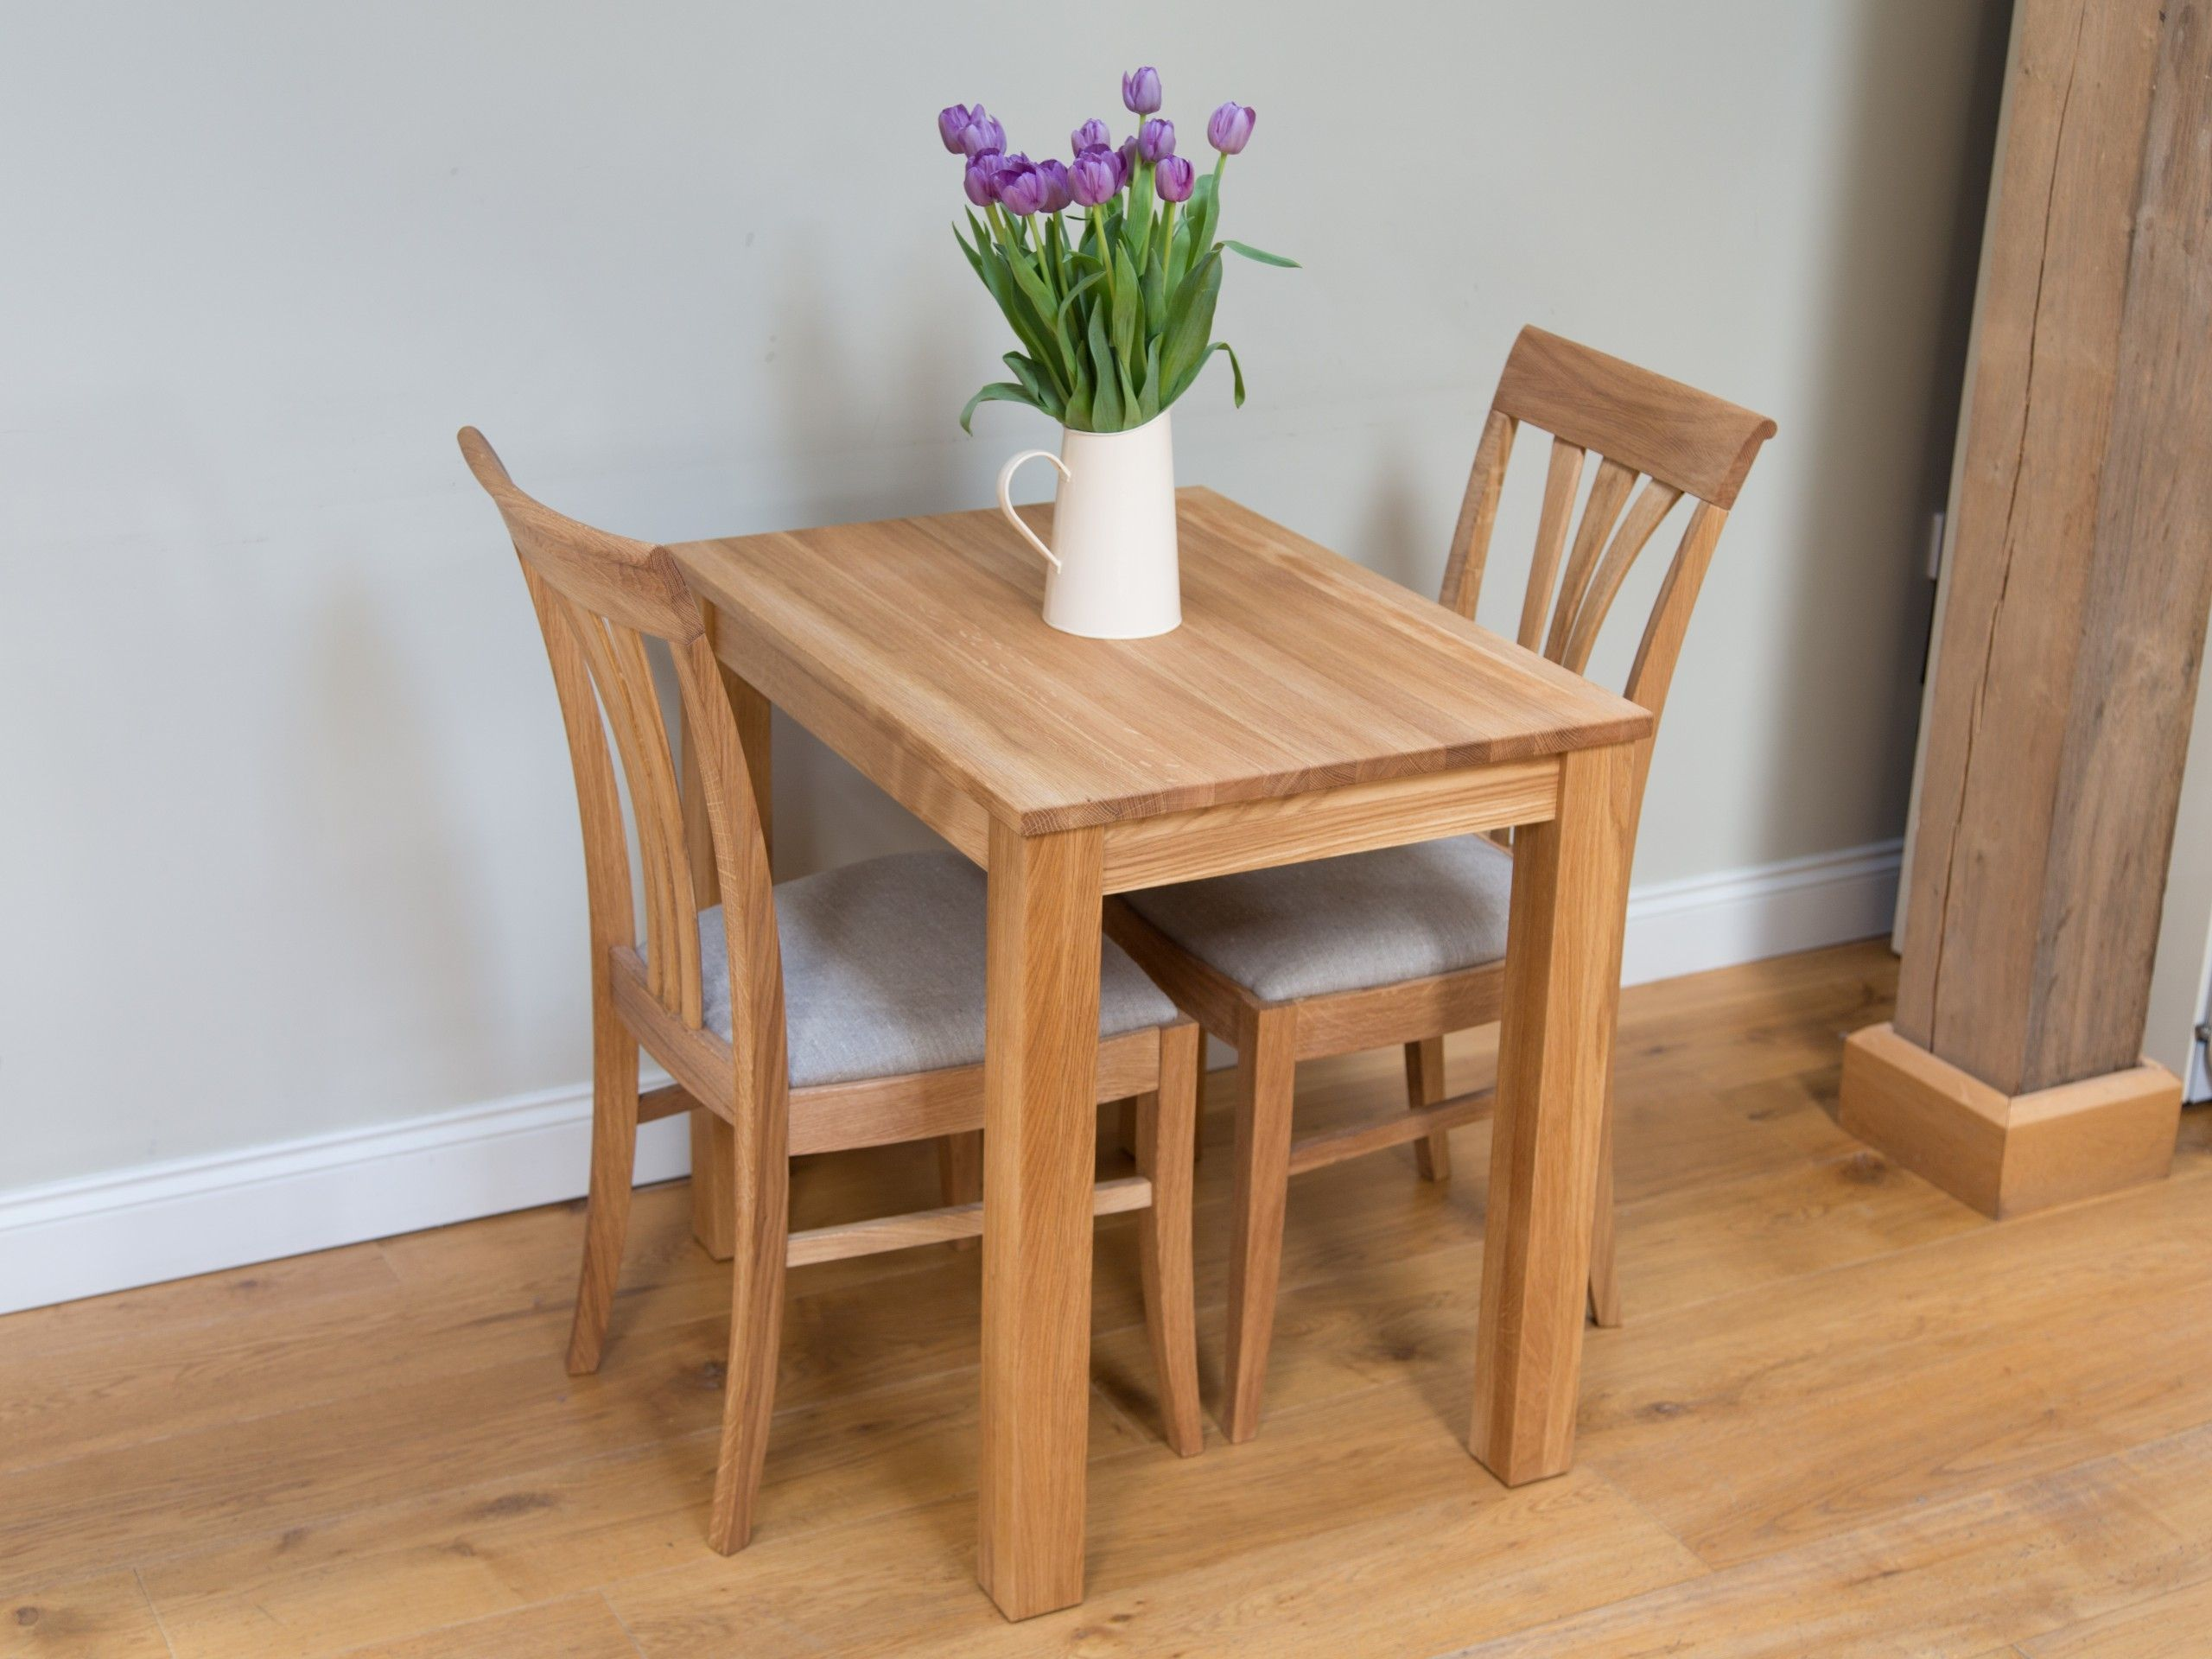 Two Seater Kitchen Table And Chairs Solid Oak Dining Table Square Kitchen Tables 2 Seater Dining Table